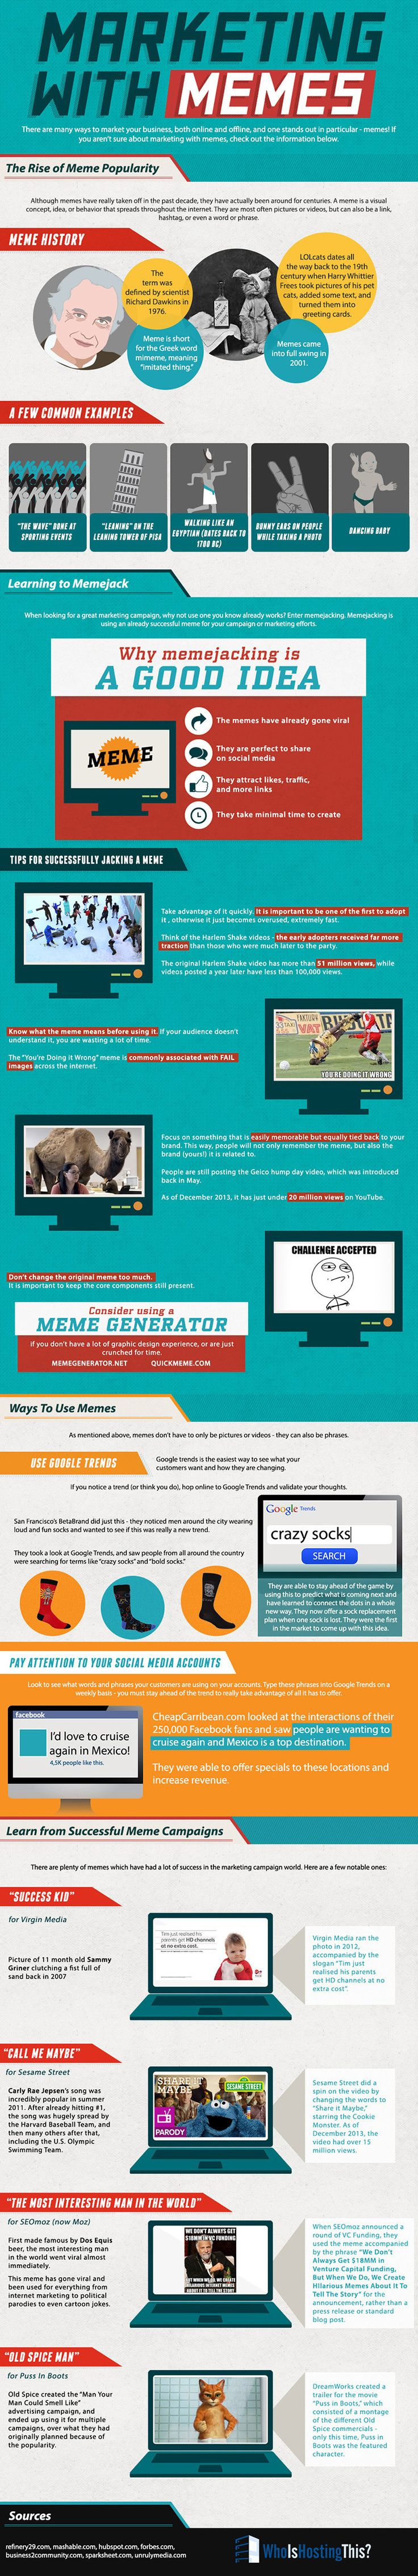 Content marketing with memes